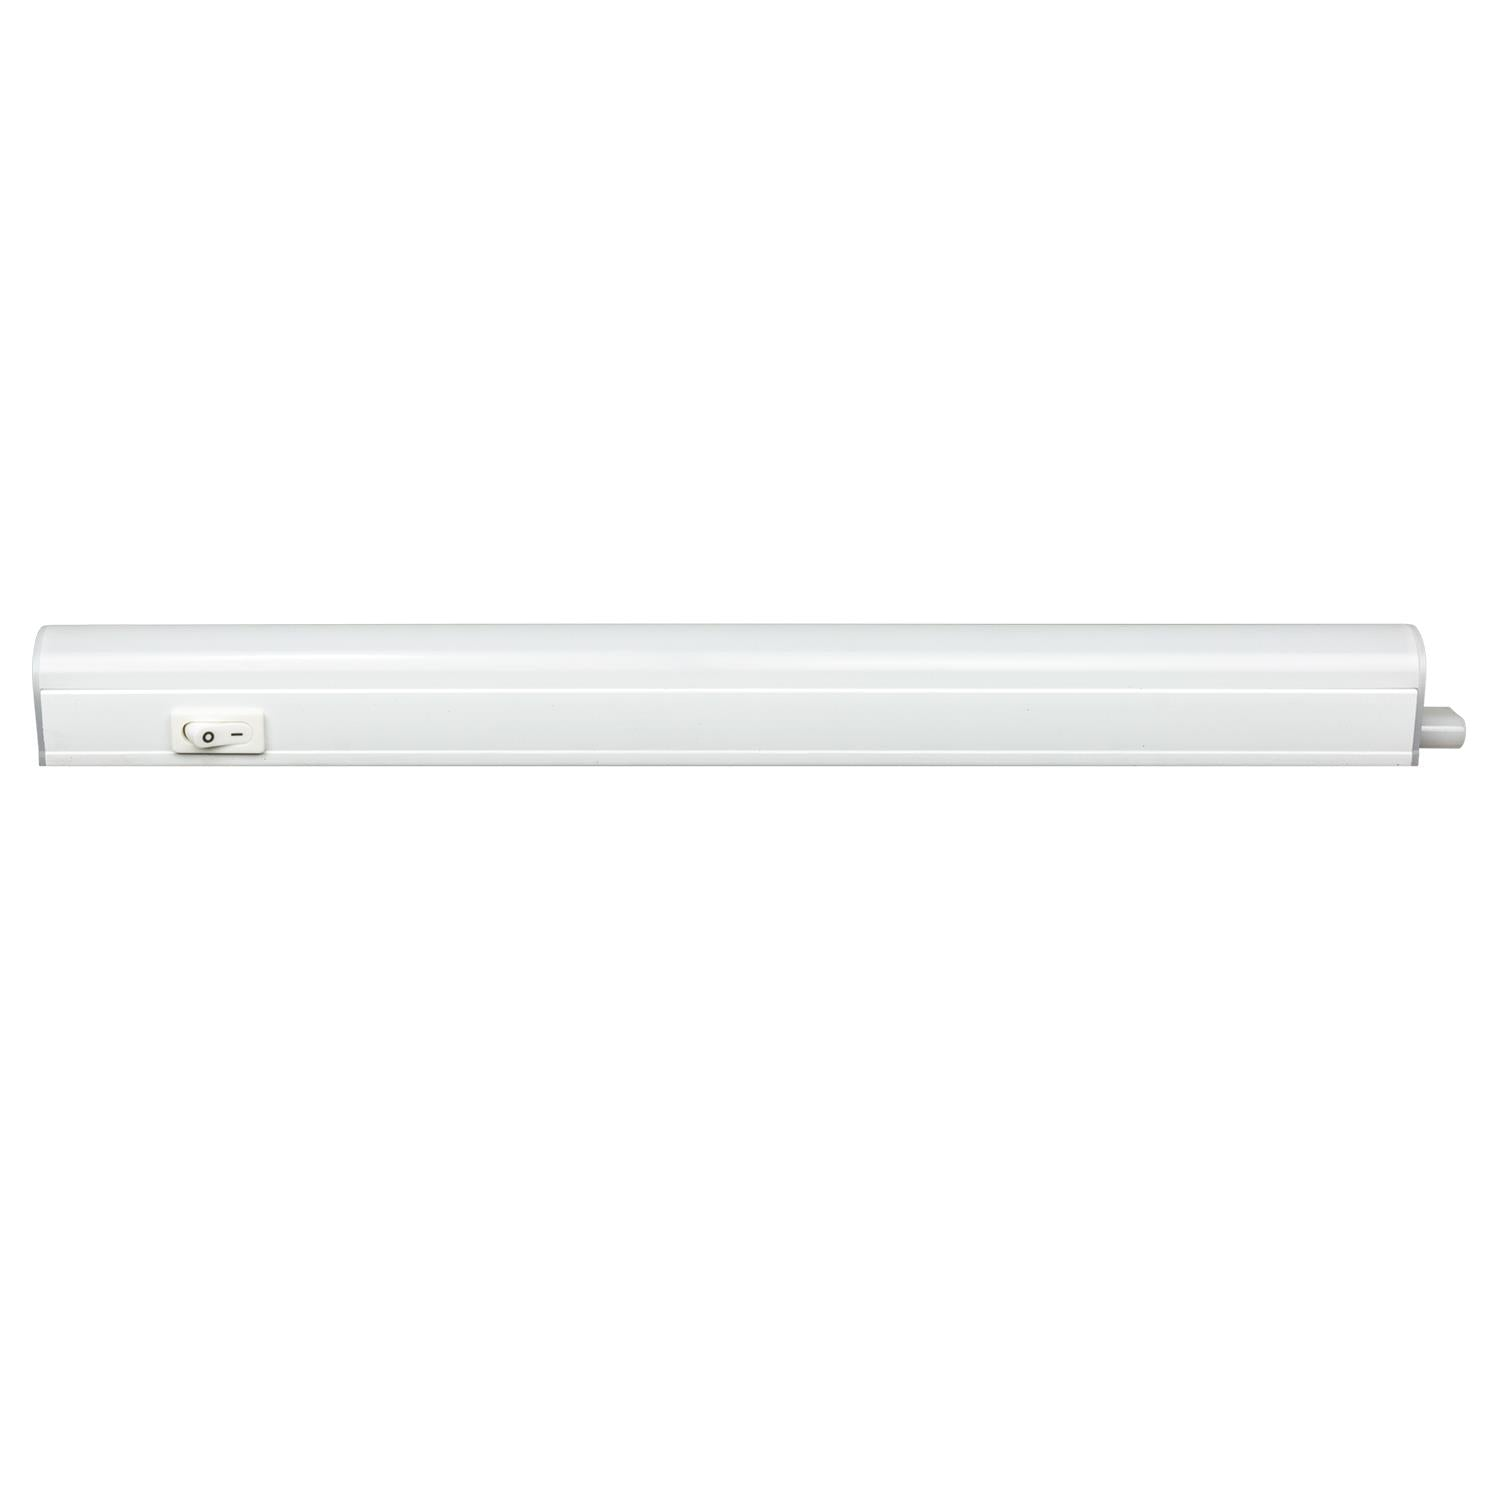 SUNLITE 12in 4W Linkable Under Cabinet Light with Plug - 4000K